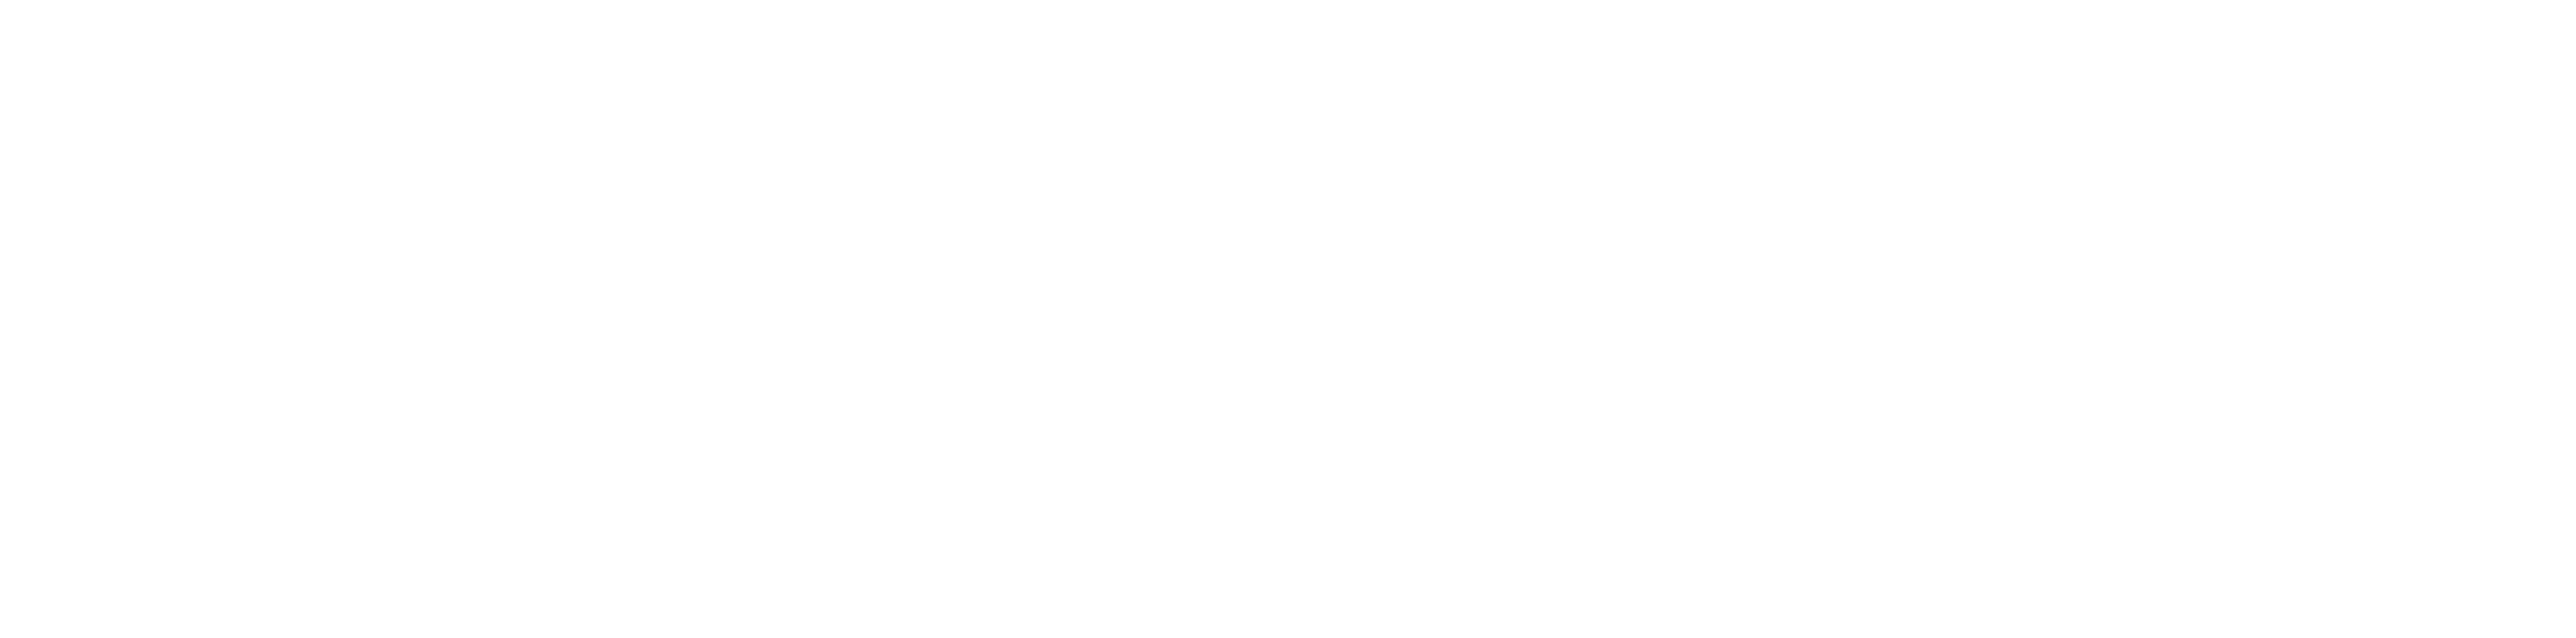 slovenia activities logo BW inverse